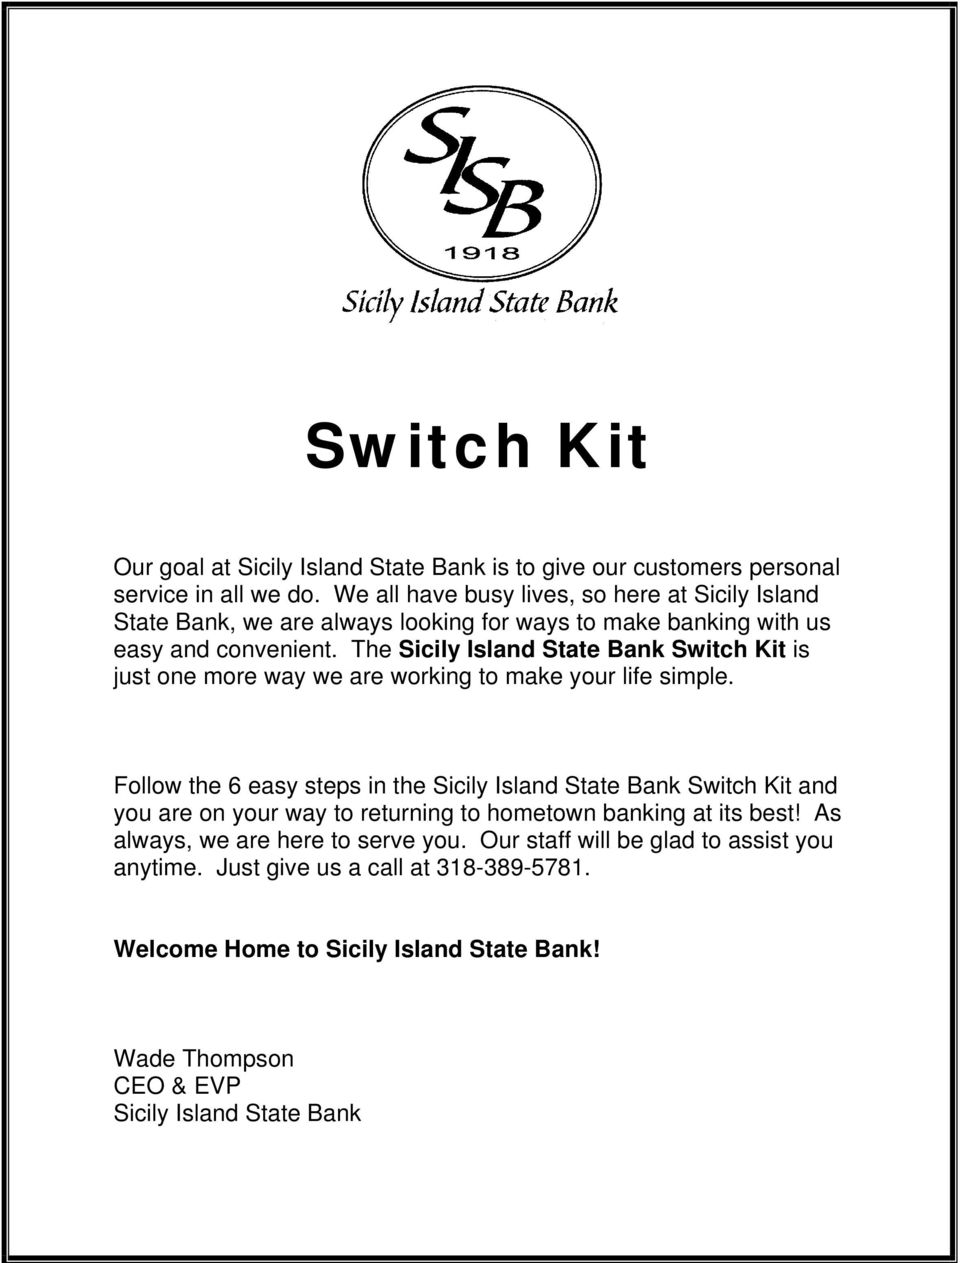 The Sicily Island State Bank Switch Kit is just one more way we are working to make your life simple.